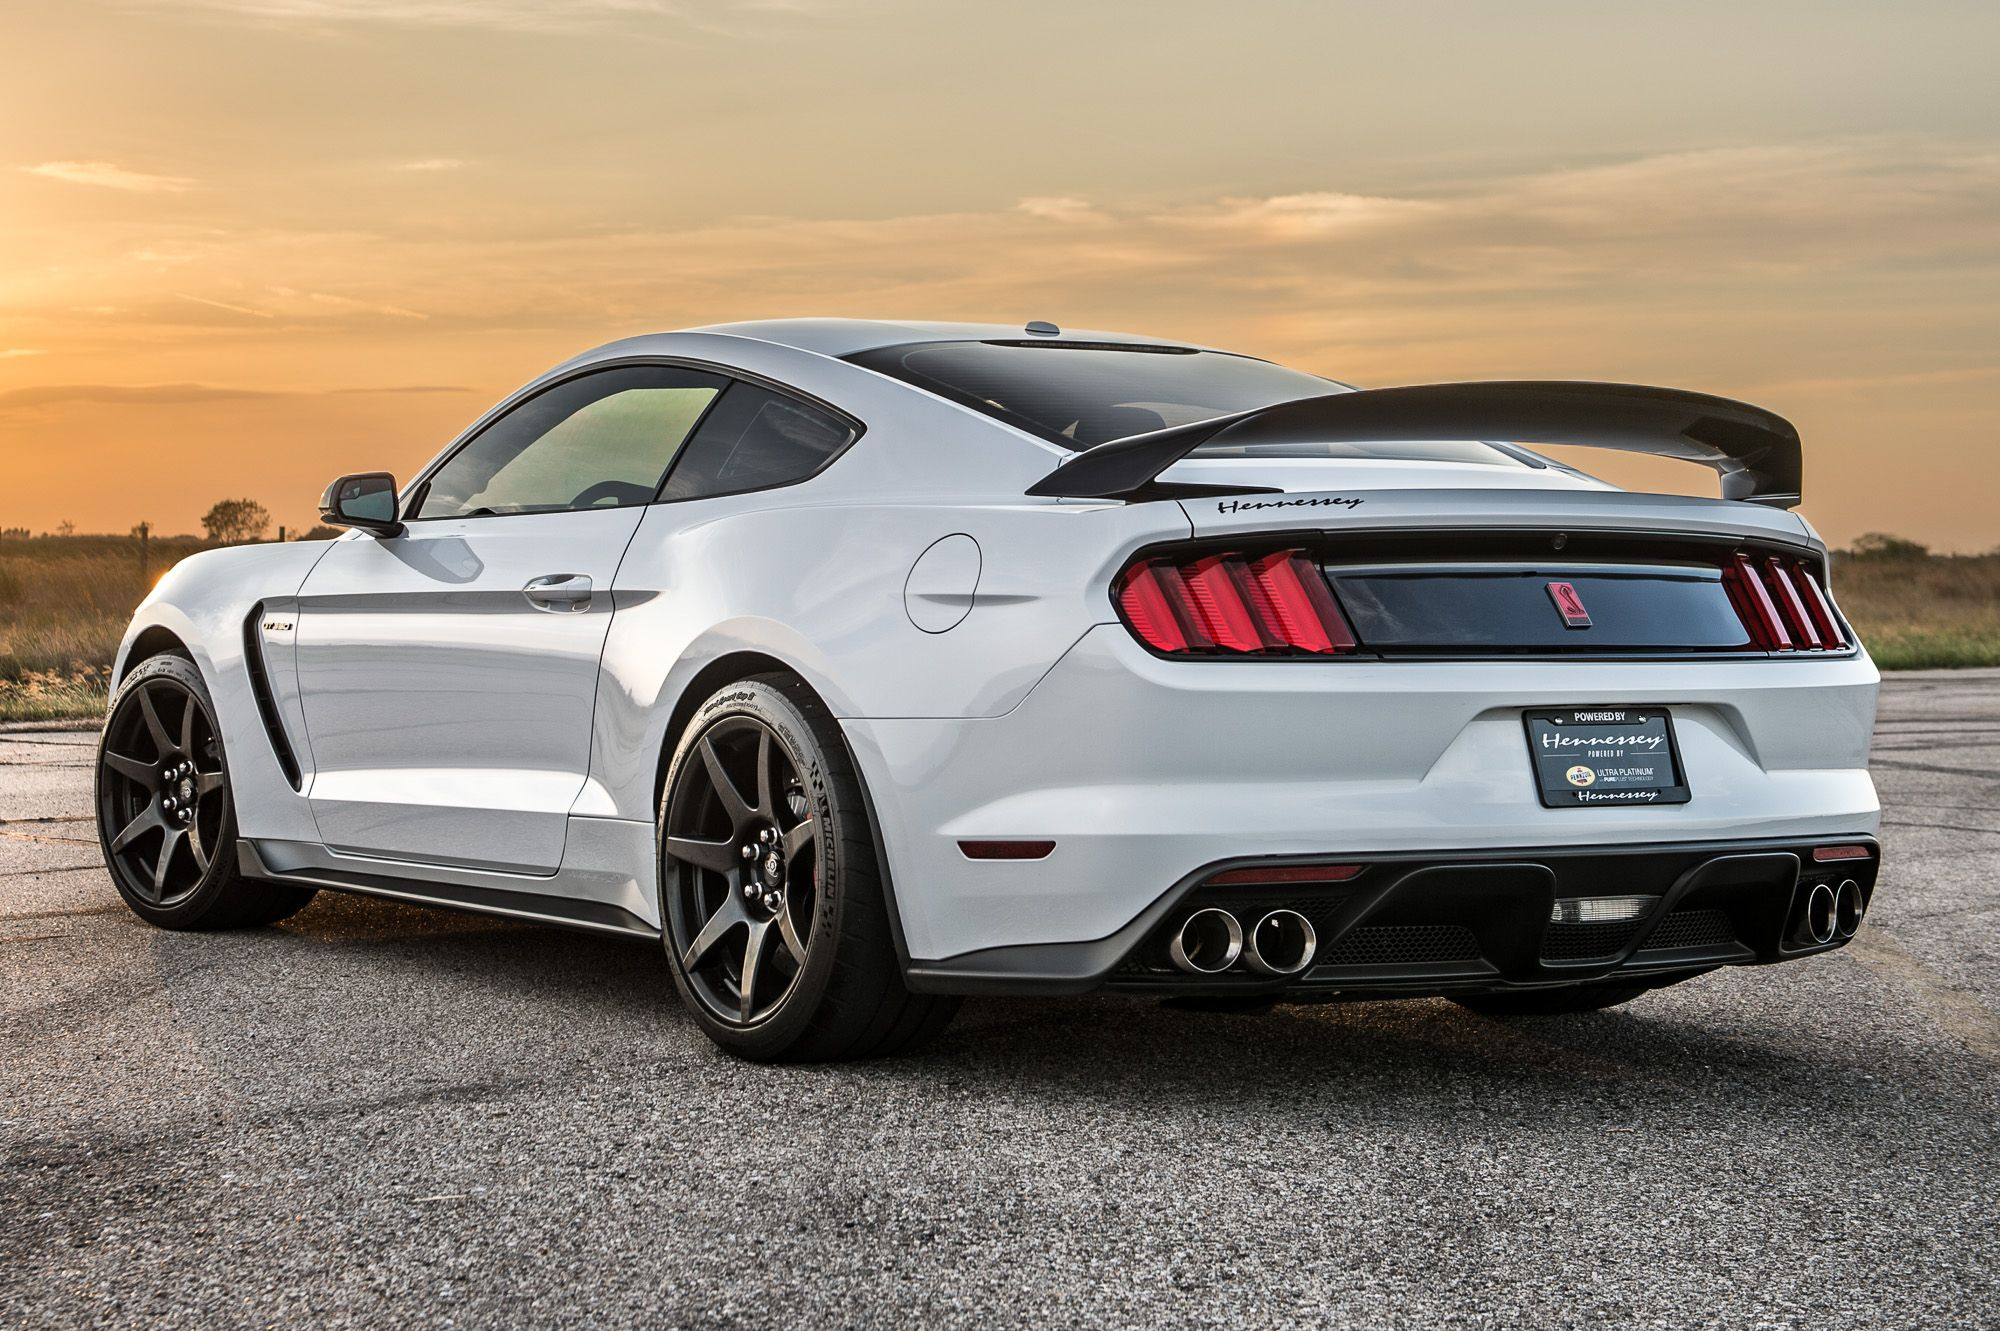 Shelby gt350 and gt350r mustang coming back in 2018 awesome rides